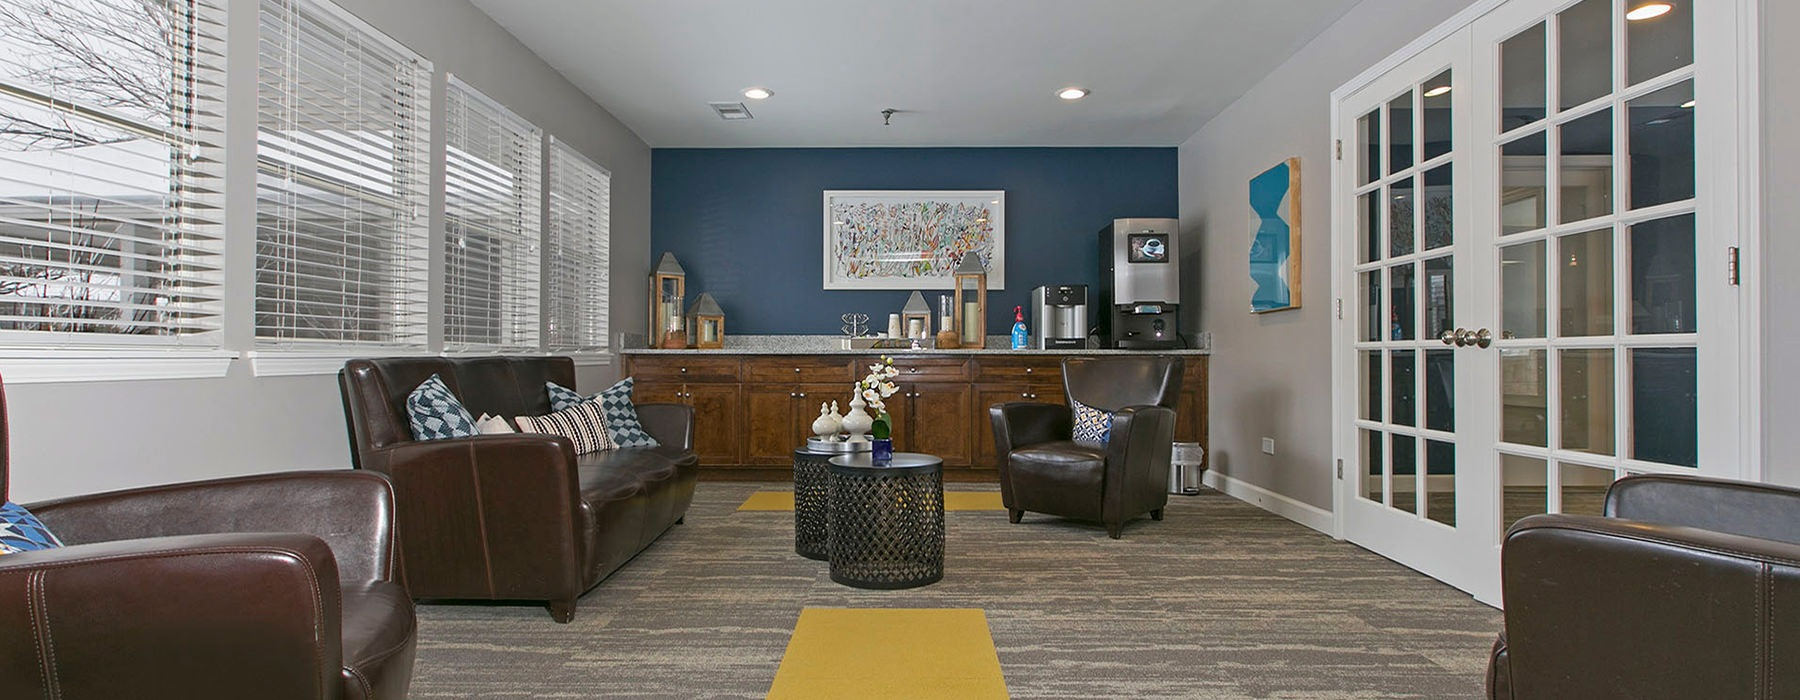 Clubhouse features plenty of seating